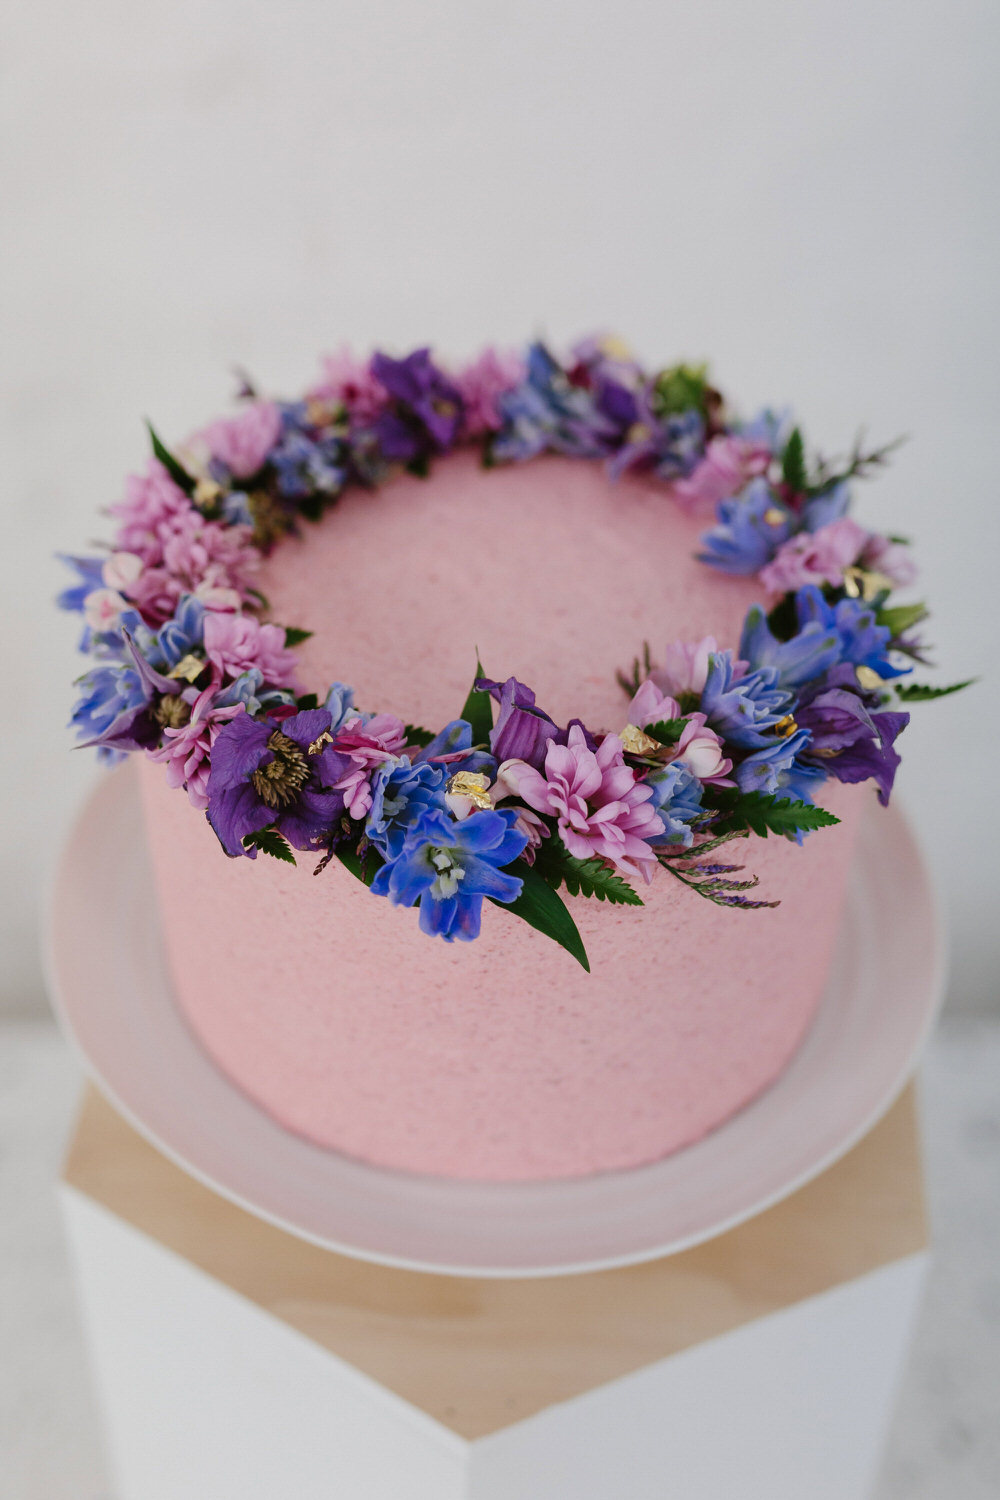 glasgow-food-photography-cake-big-bear-bakery-flower-crown-4